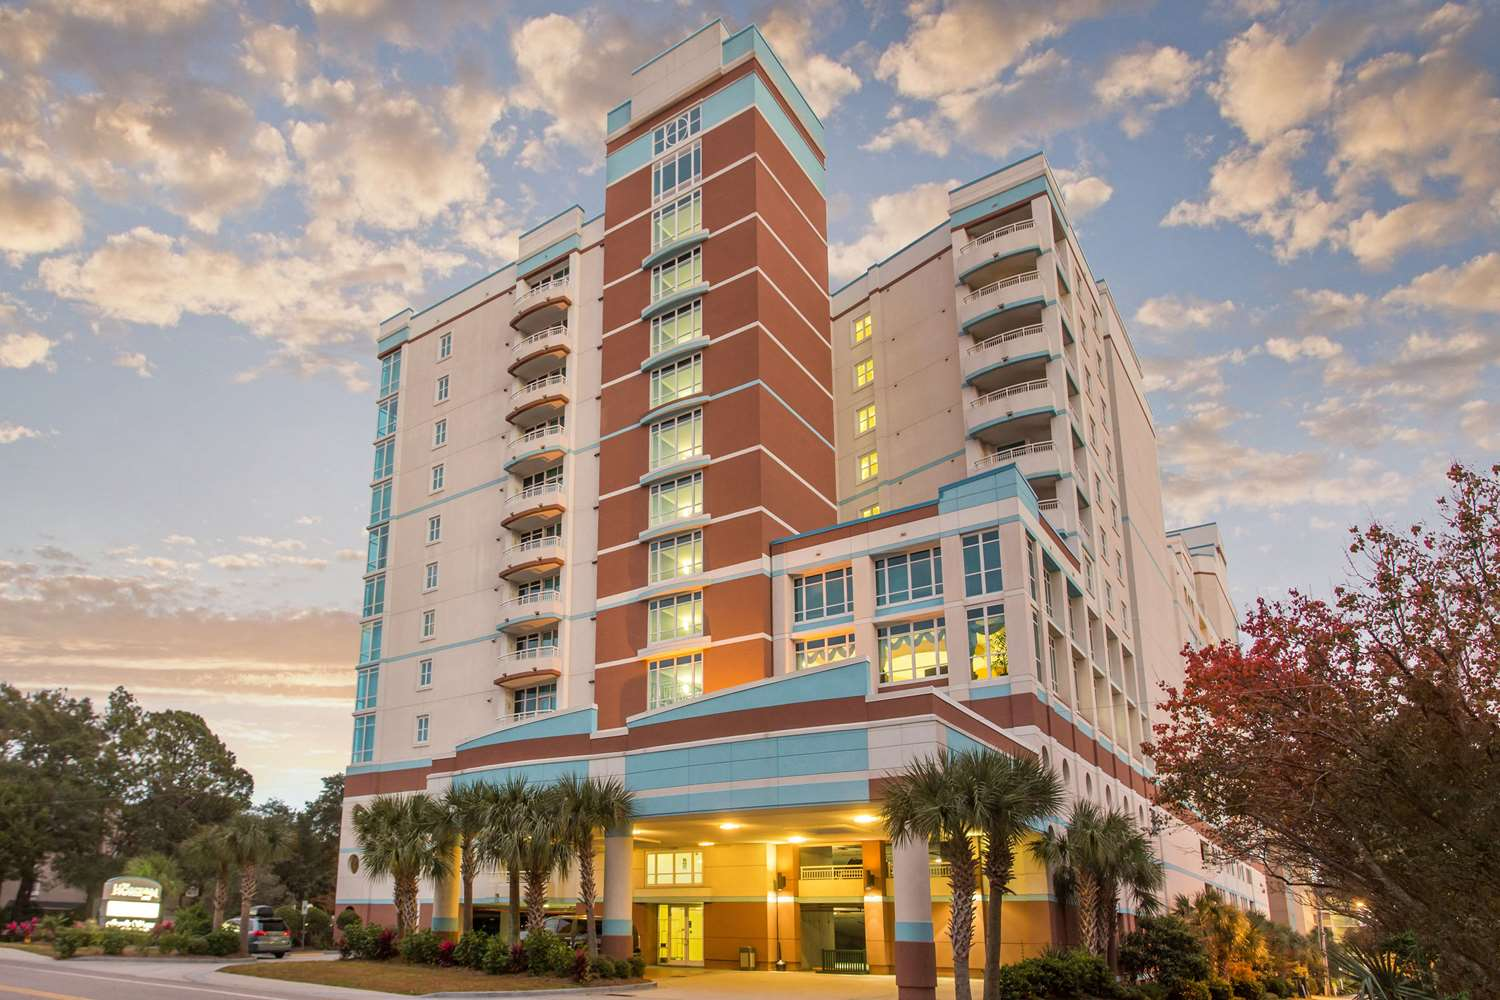 Exterior View Bluegreen Vacations Horizons At 77th Resort Myrtle Beach